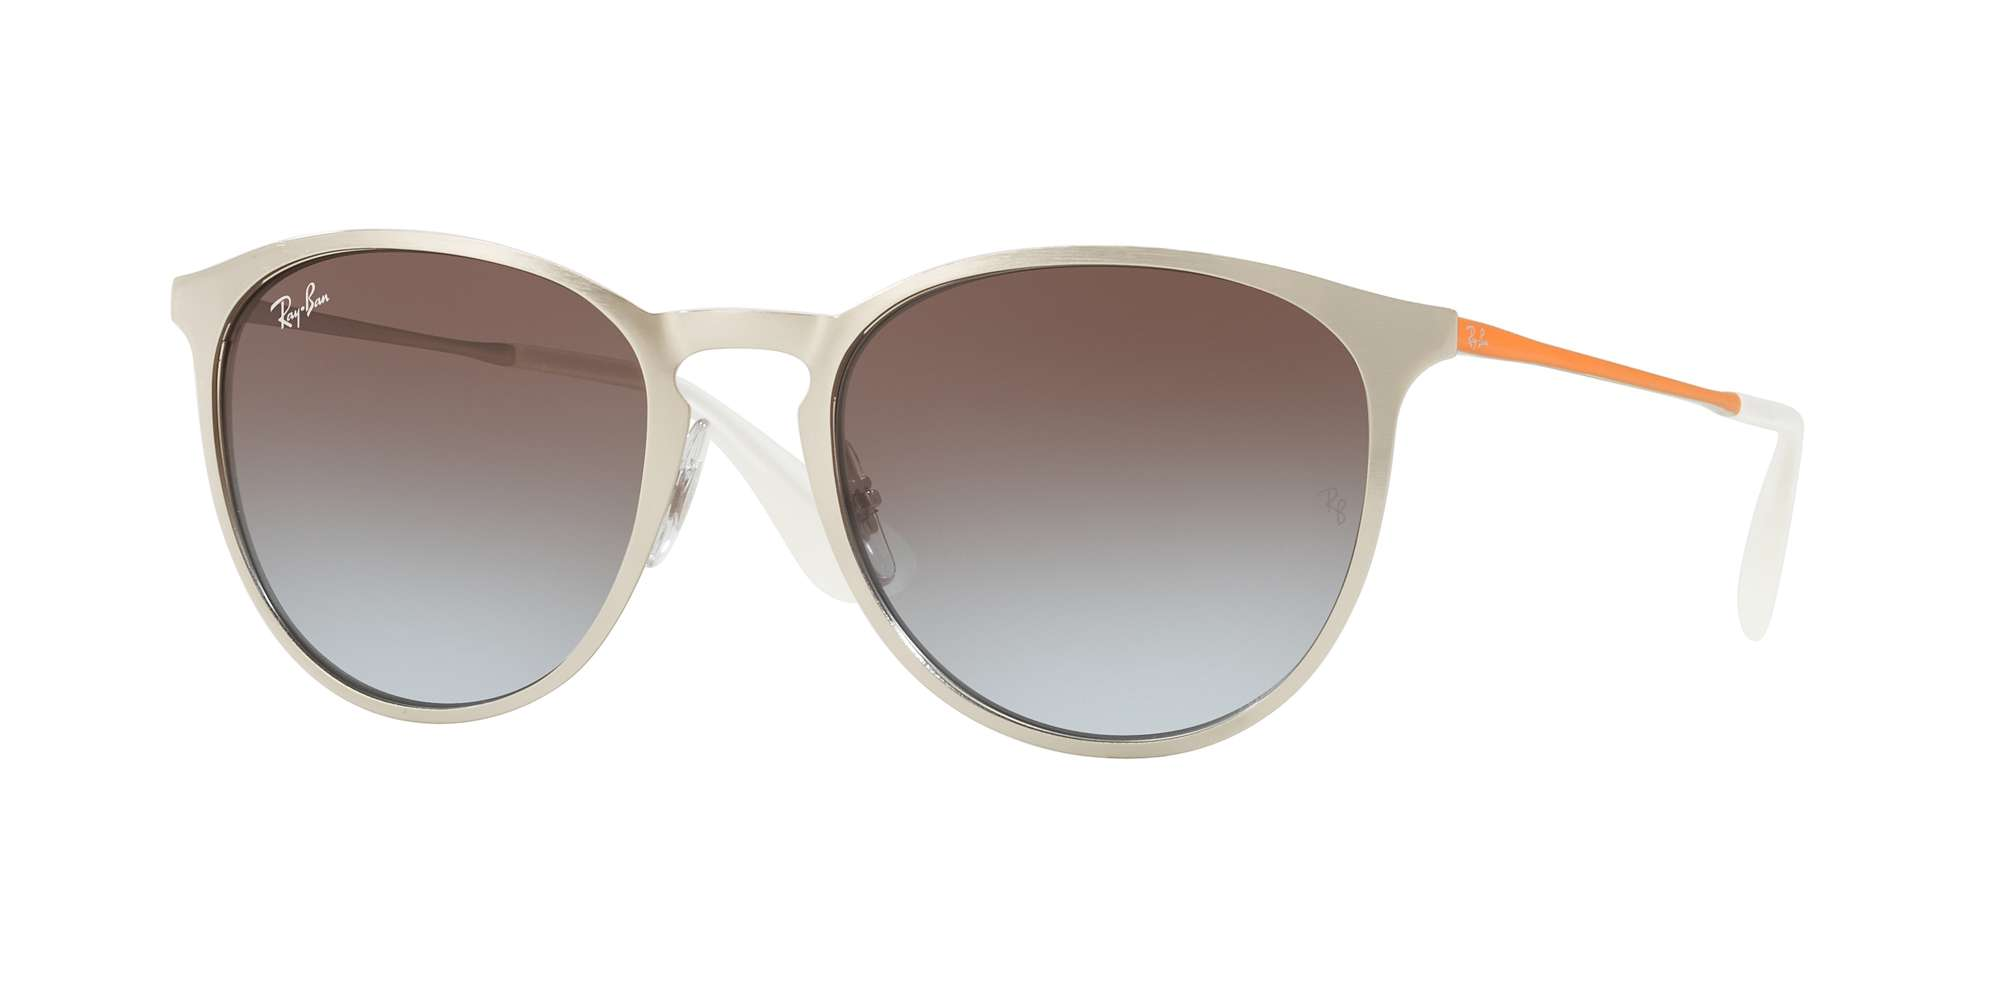 BRUSCHED SILVER / LIGHT BLUE GRADIENT BROWN lenses